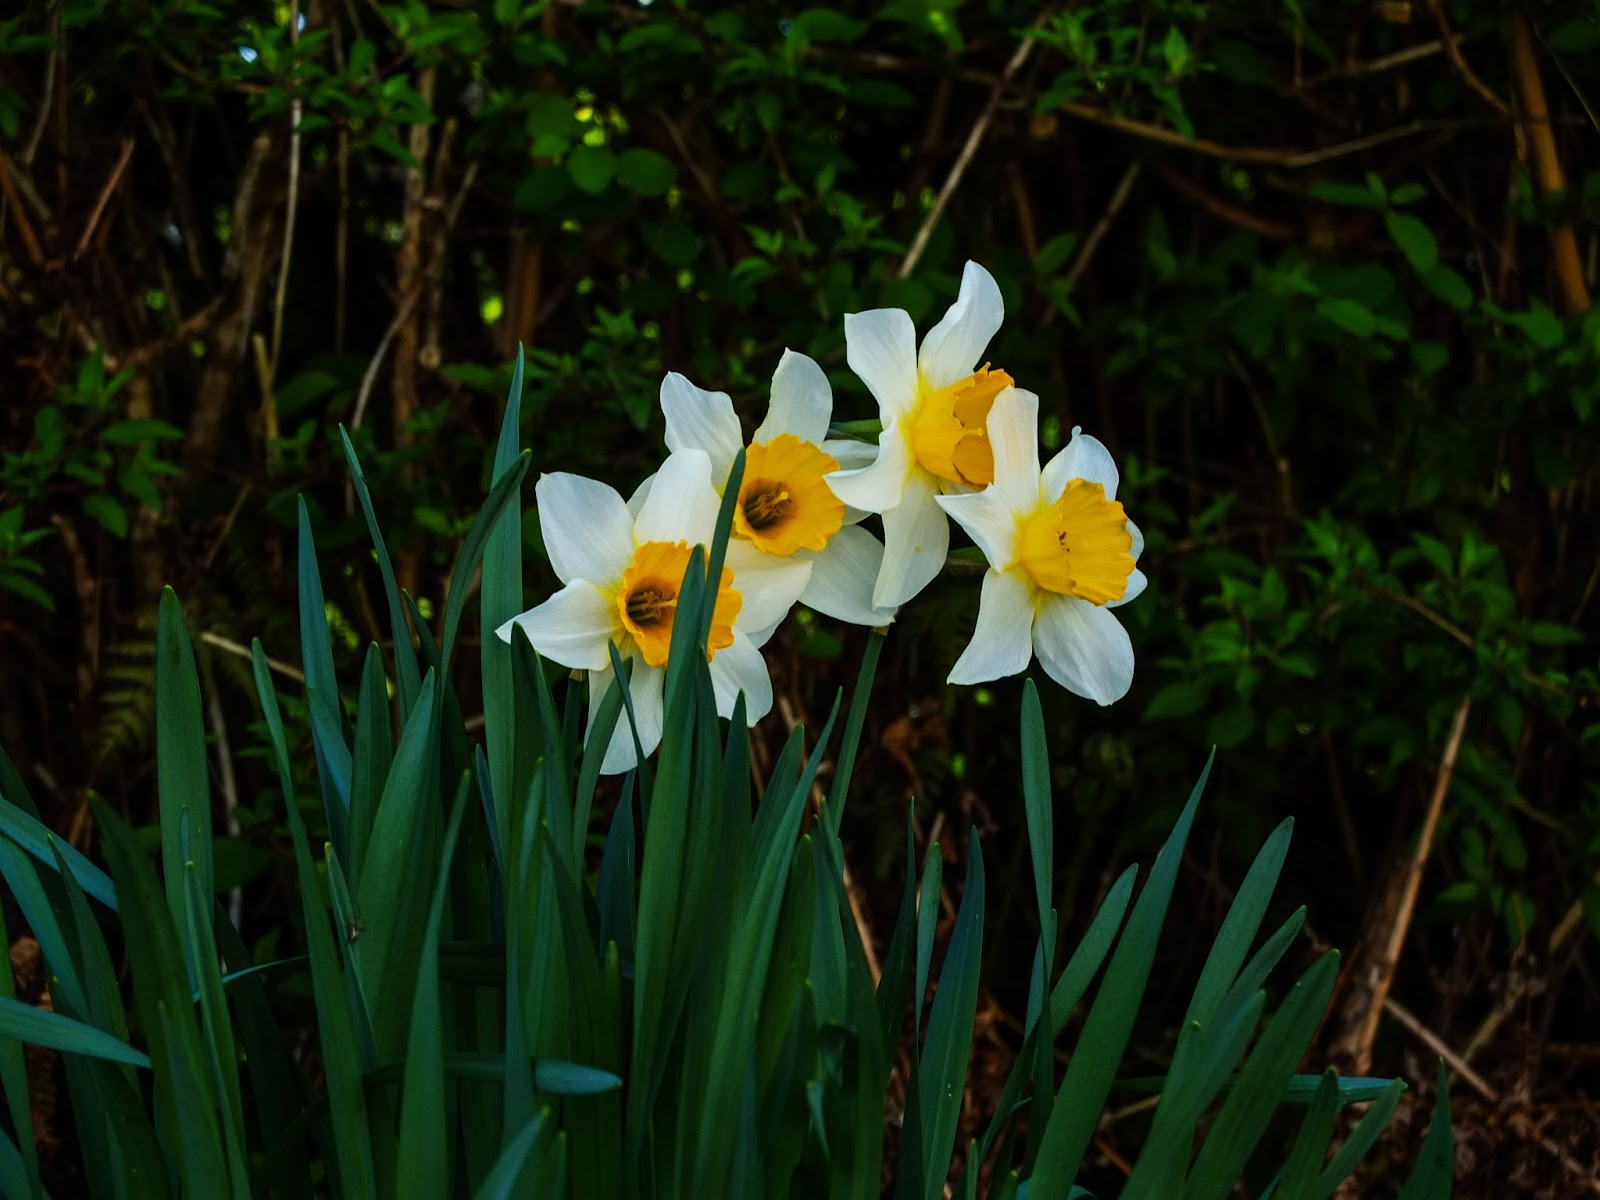 A clump# of daffodils pictured under a hedge.